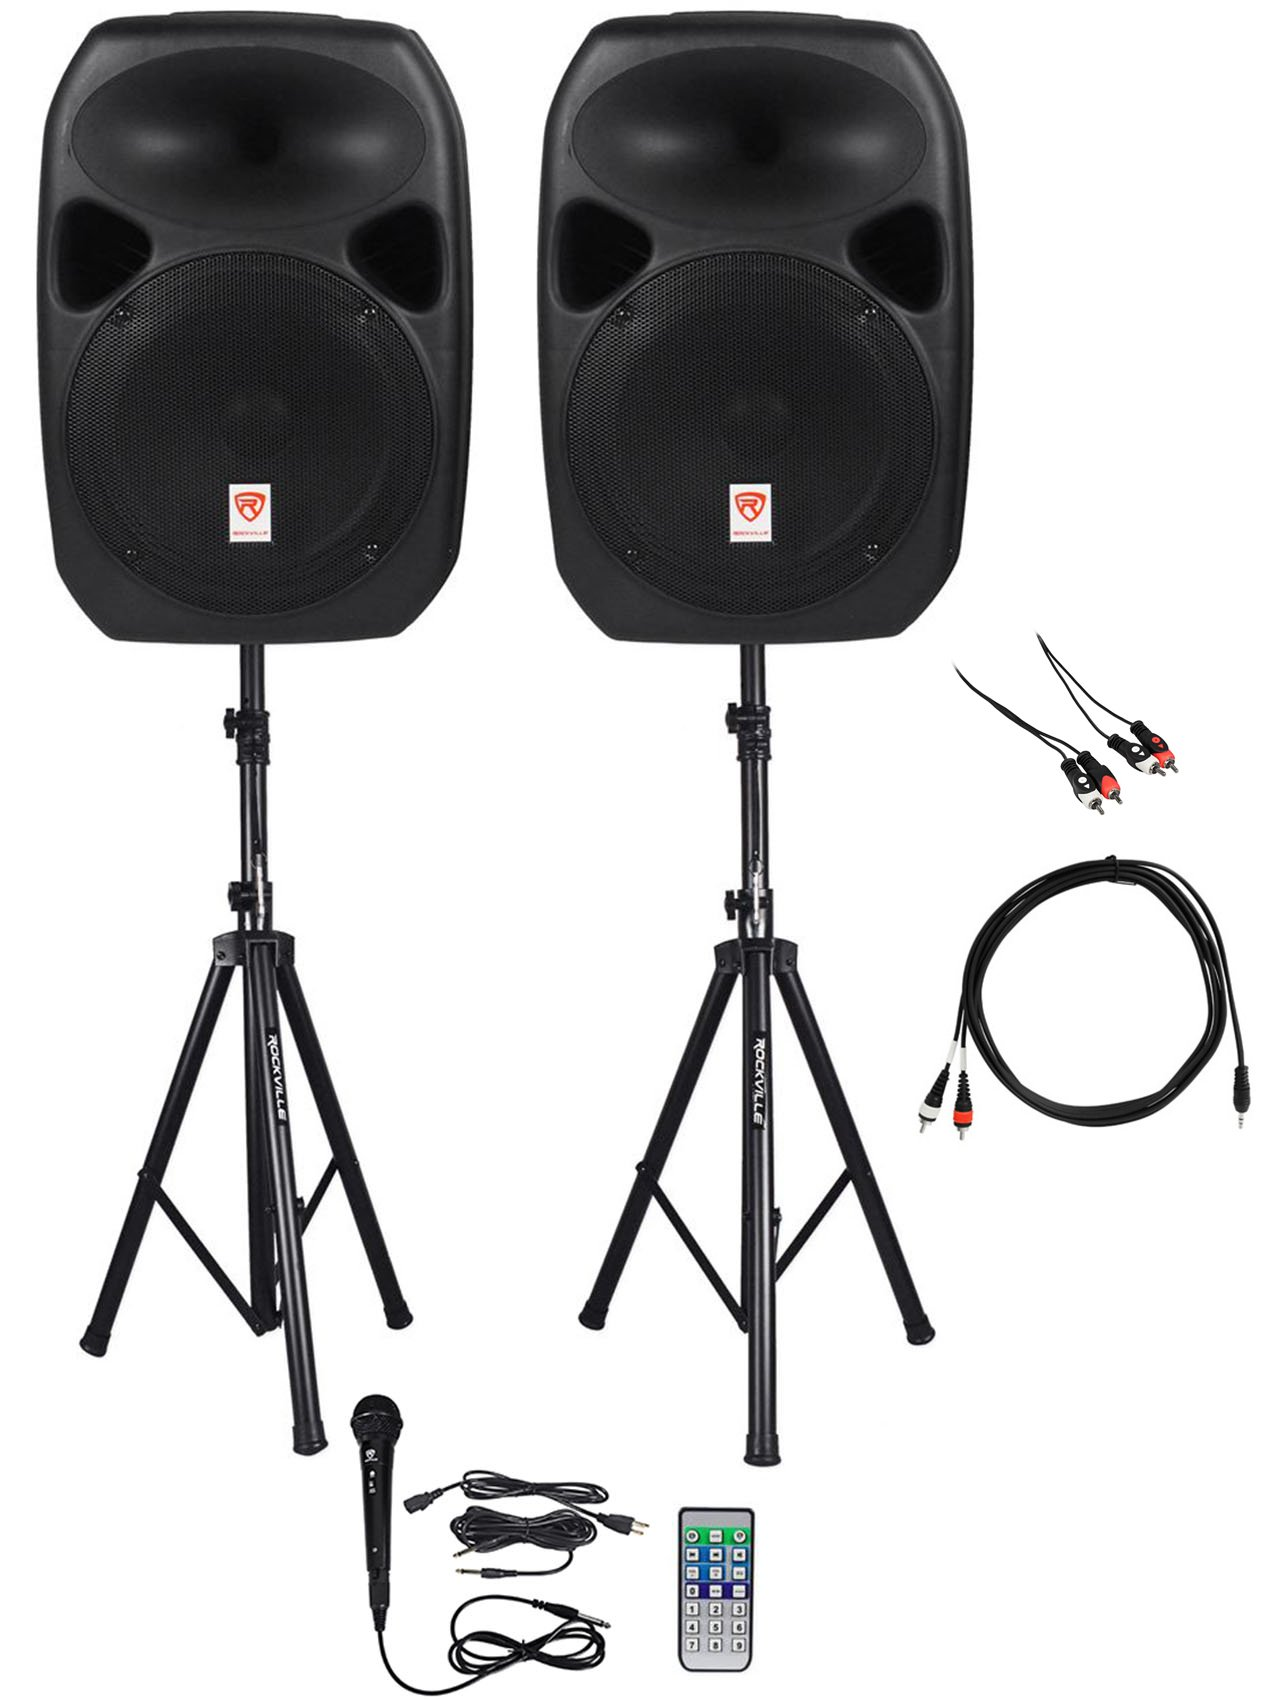 Rockville Power GIG RPG-122K All In One DJ/PA Package (2) 12'' DJ/PA Speakers 1000 Watts Peak Power/250 Watts RMS with Built in Bluetooth, USB/SD Player, FM Tuner, Speaker Stands and a Wired Microphone